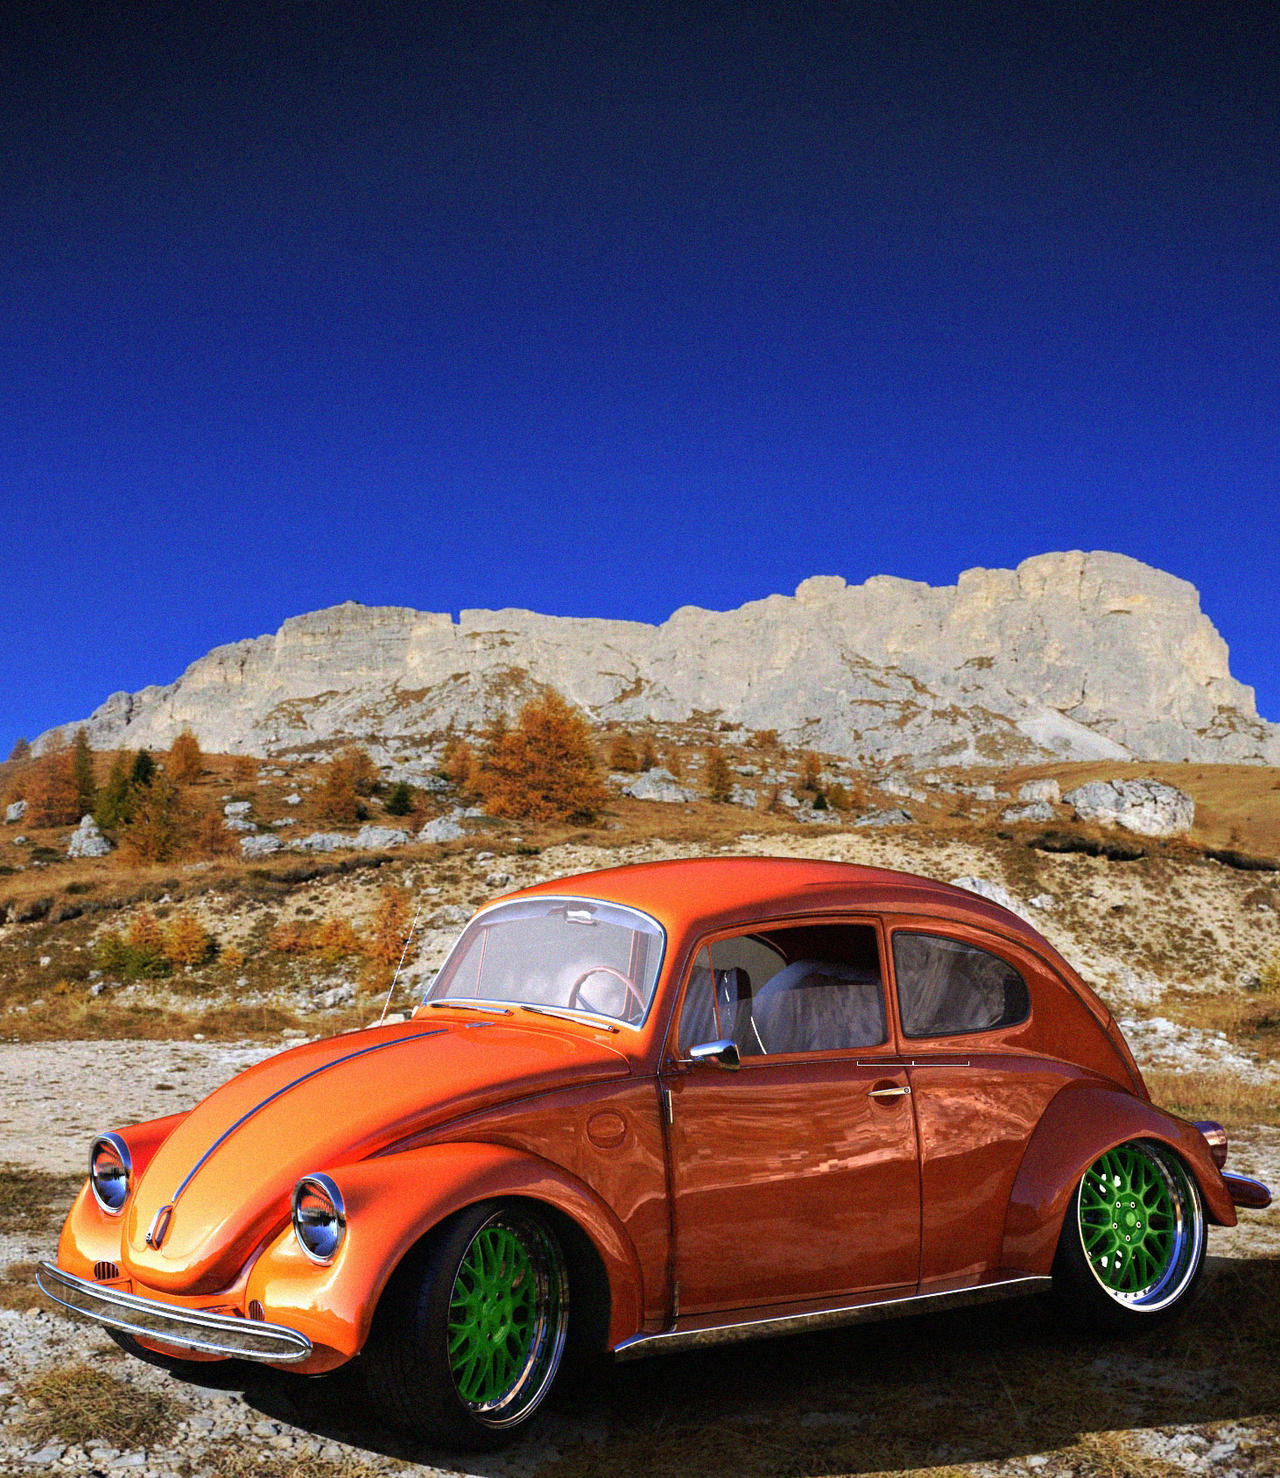 VW Beetle Cool Rims By Mandeologul On DeviantArt